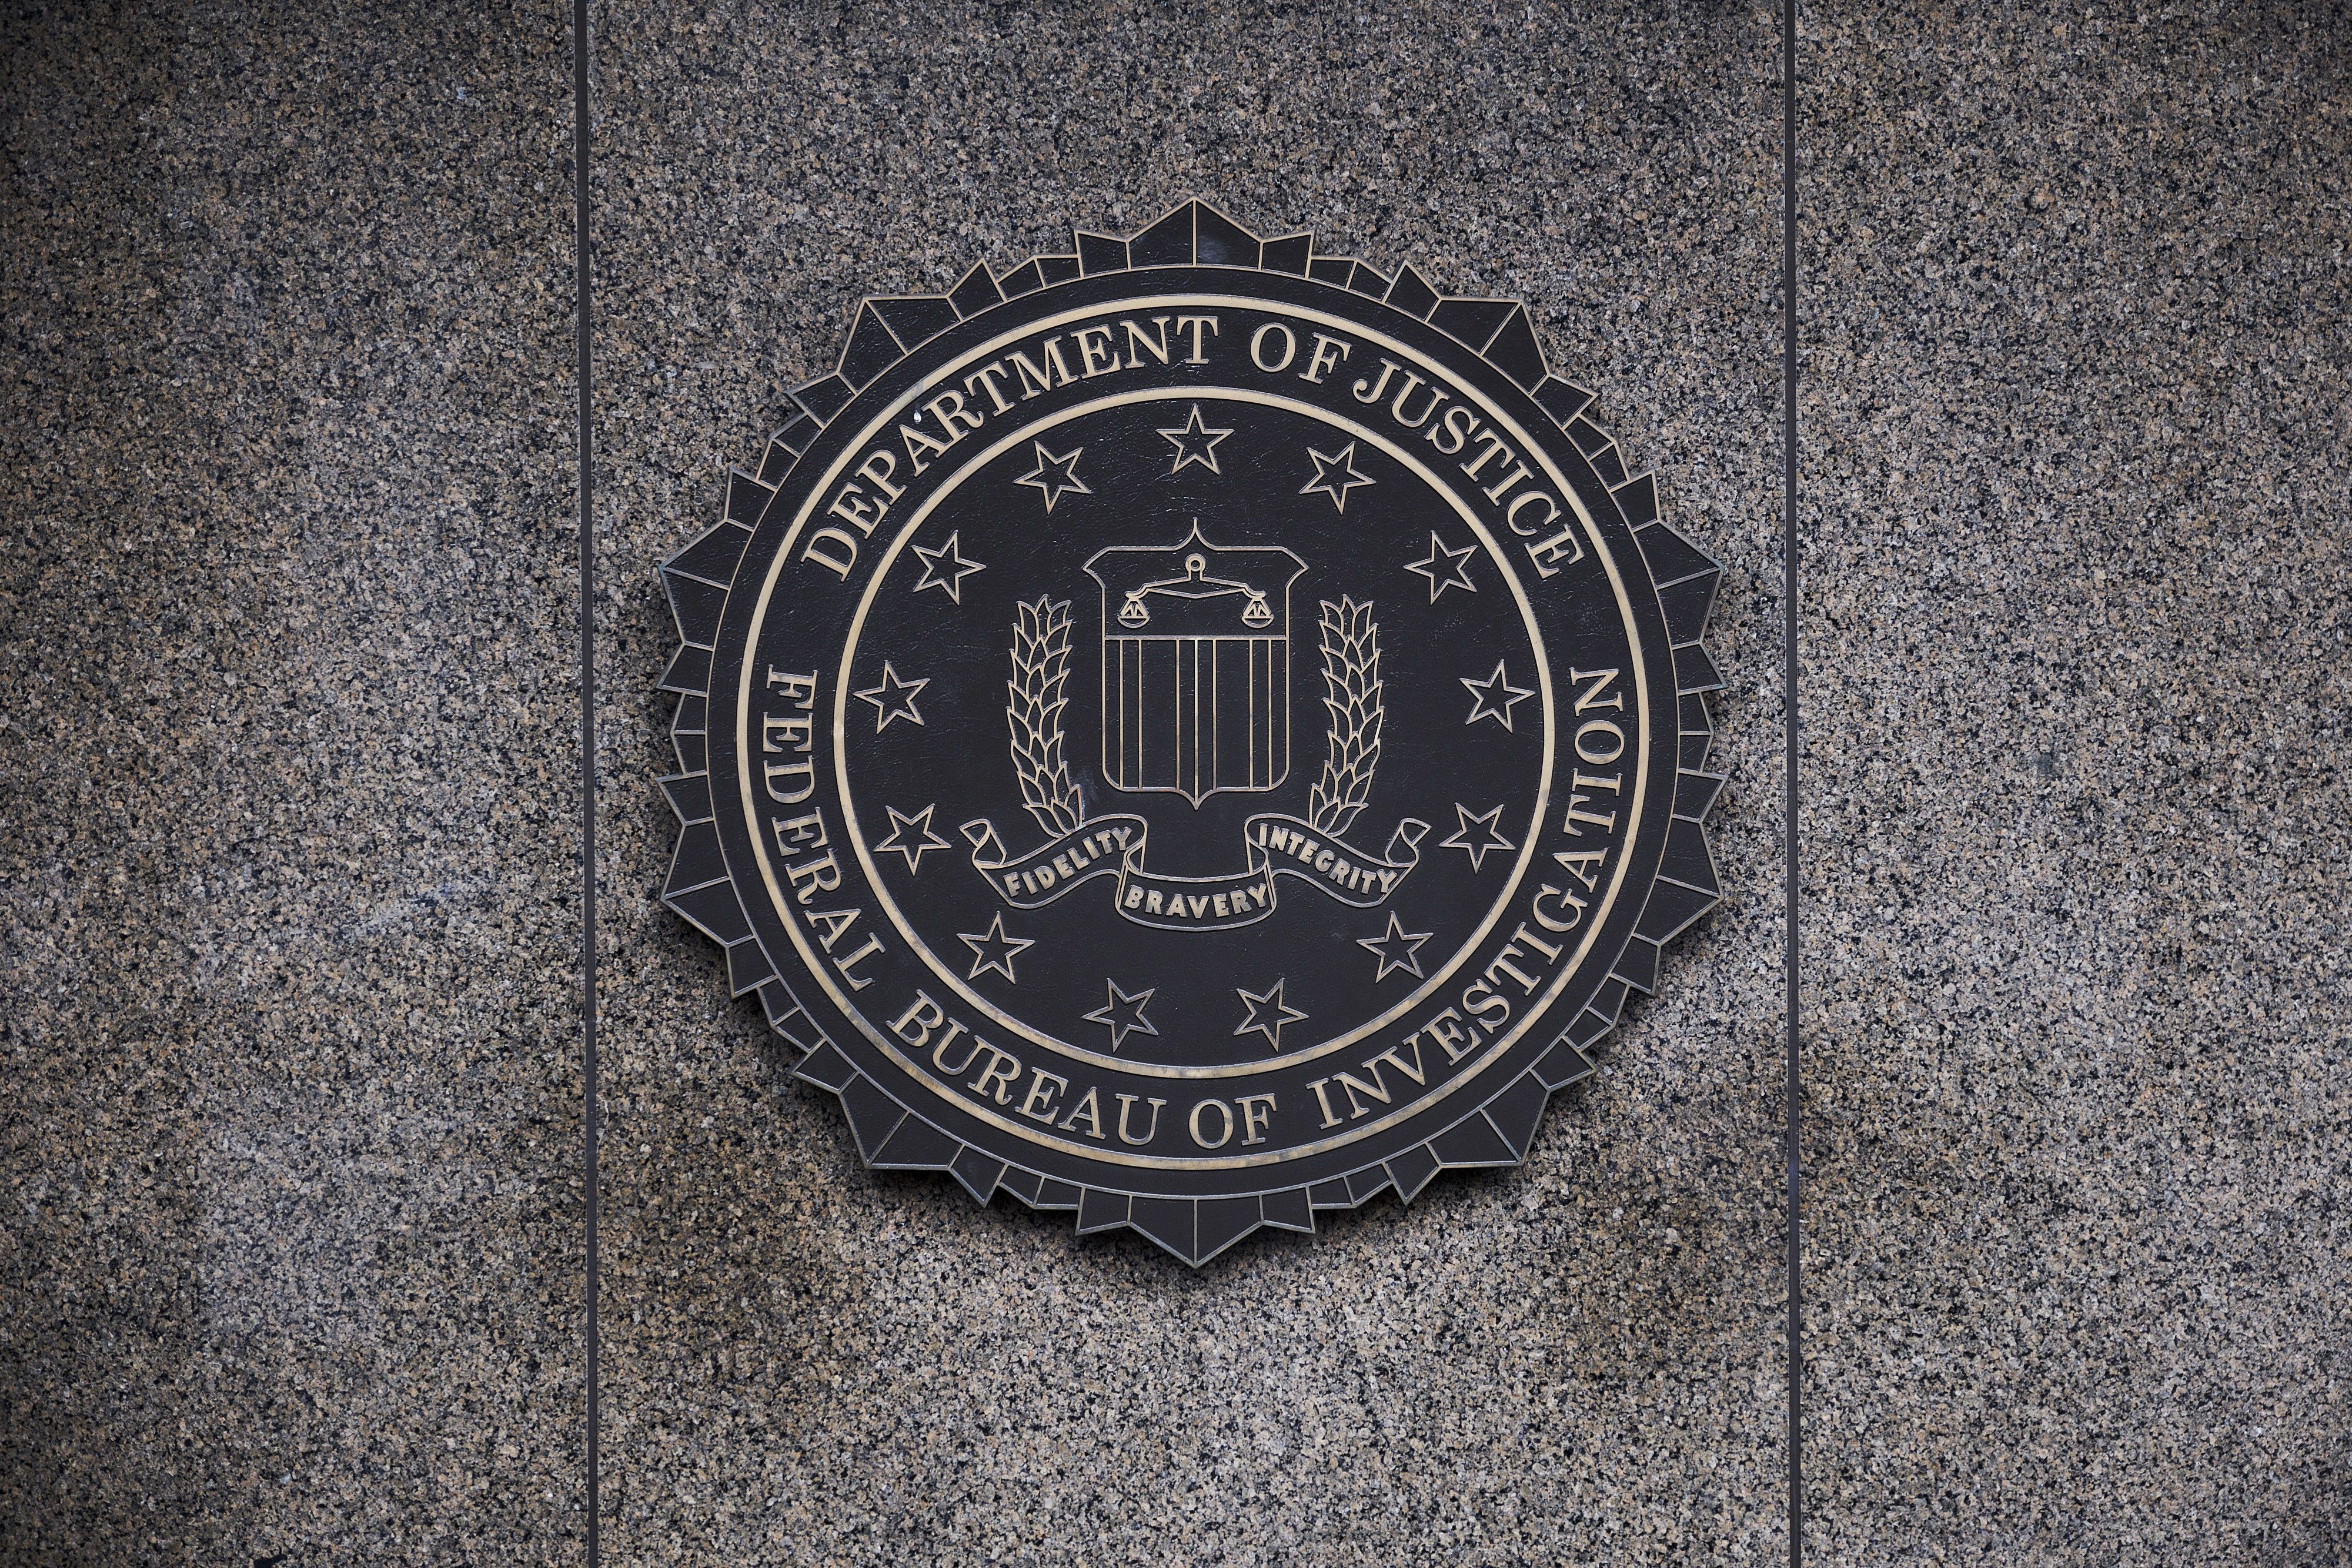 The Federal Bureau of Investigation seal is displayed outside FBI headquarters in Washington, D.C., U.S., on Friday, Feb. 2, 2018. FBI and Justice Department officials got a warrant to spy on a Trump campaign associate by misleading a surveillance court judge, House Republicans contend in anewly released memothat Democrats have dismissed as a contrived account intended to protect the president. Photographer: T.J. Kirkpatrick/Bloomberg via Getty Images